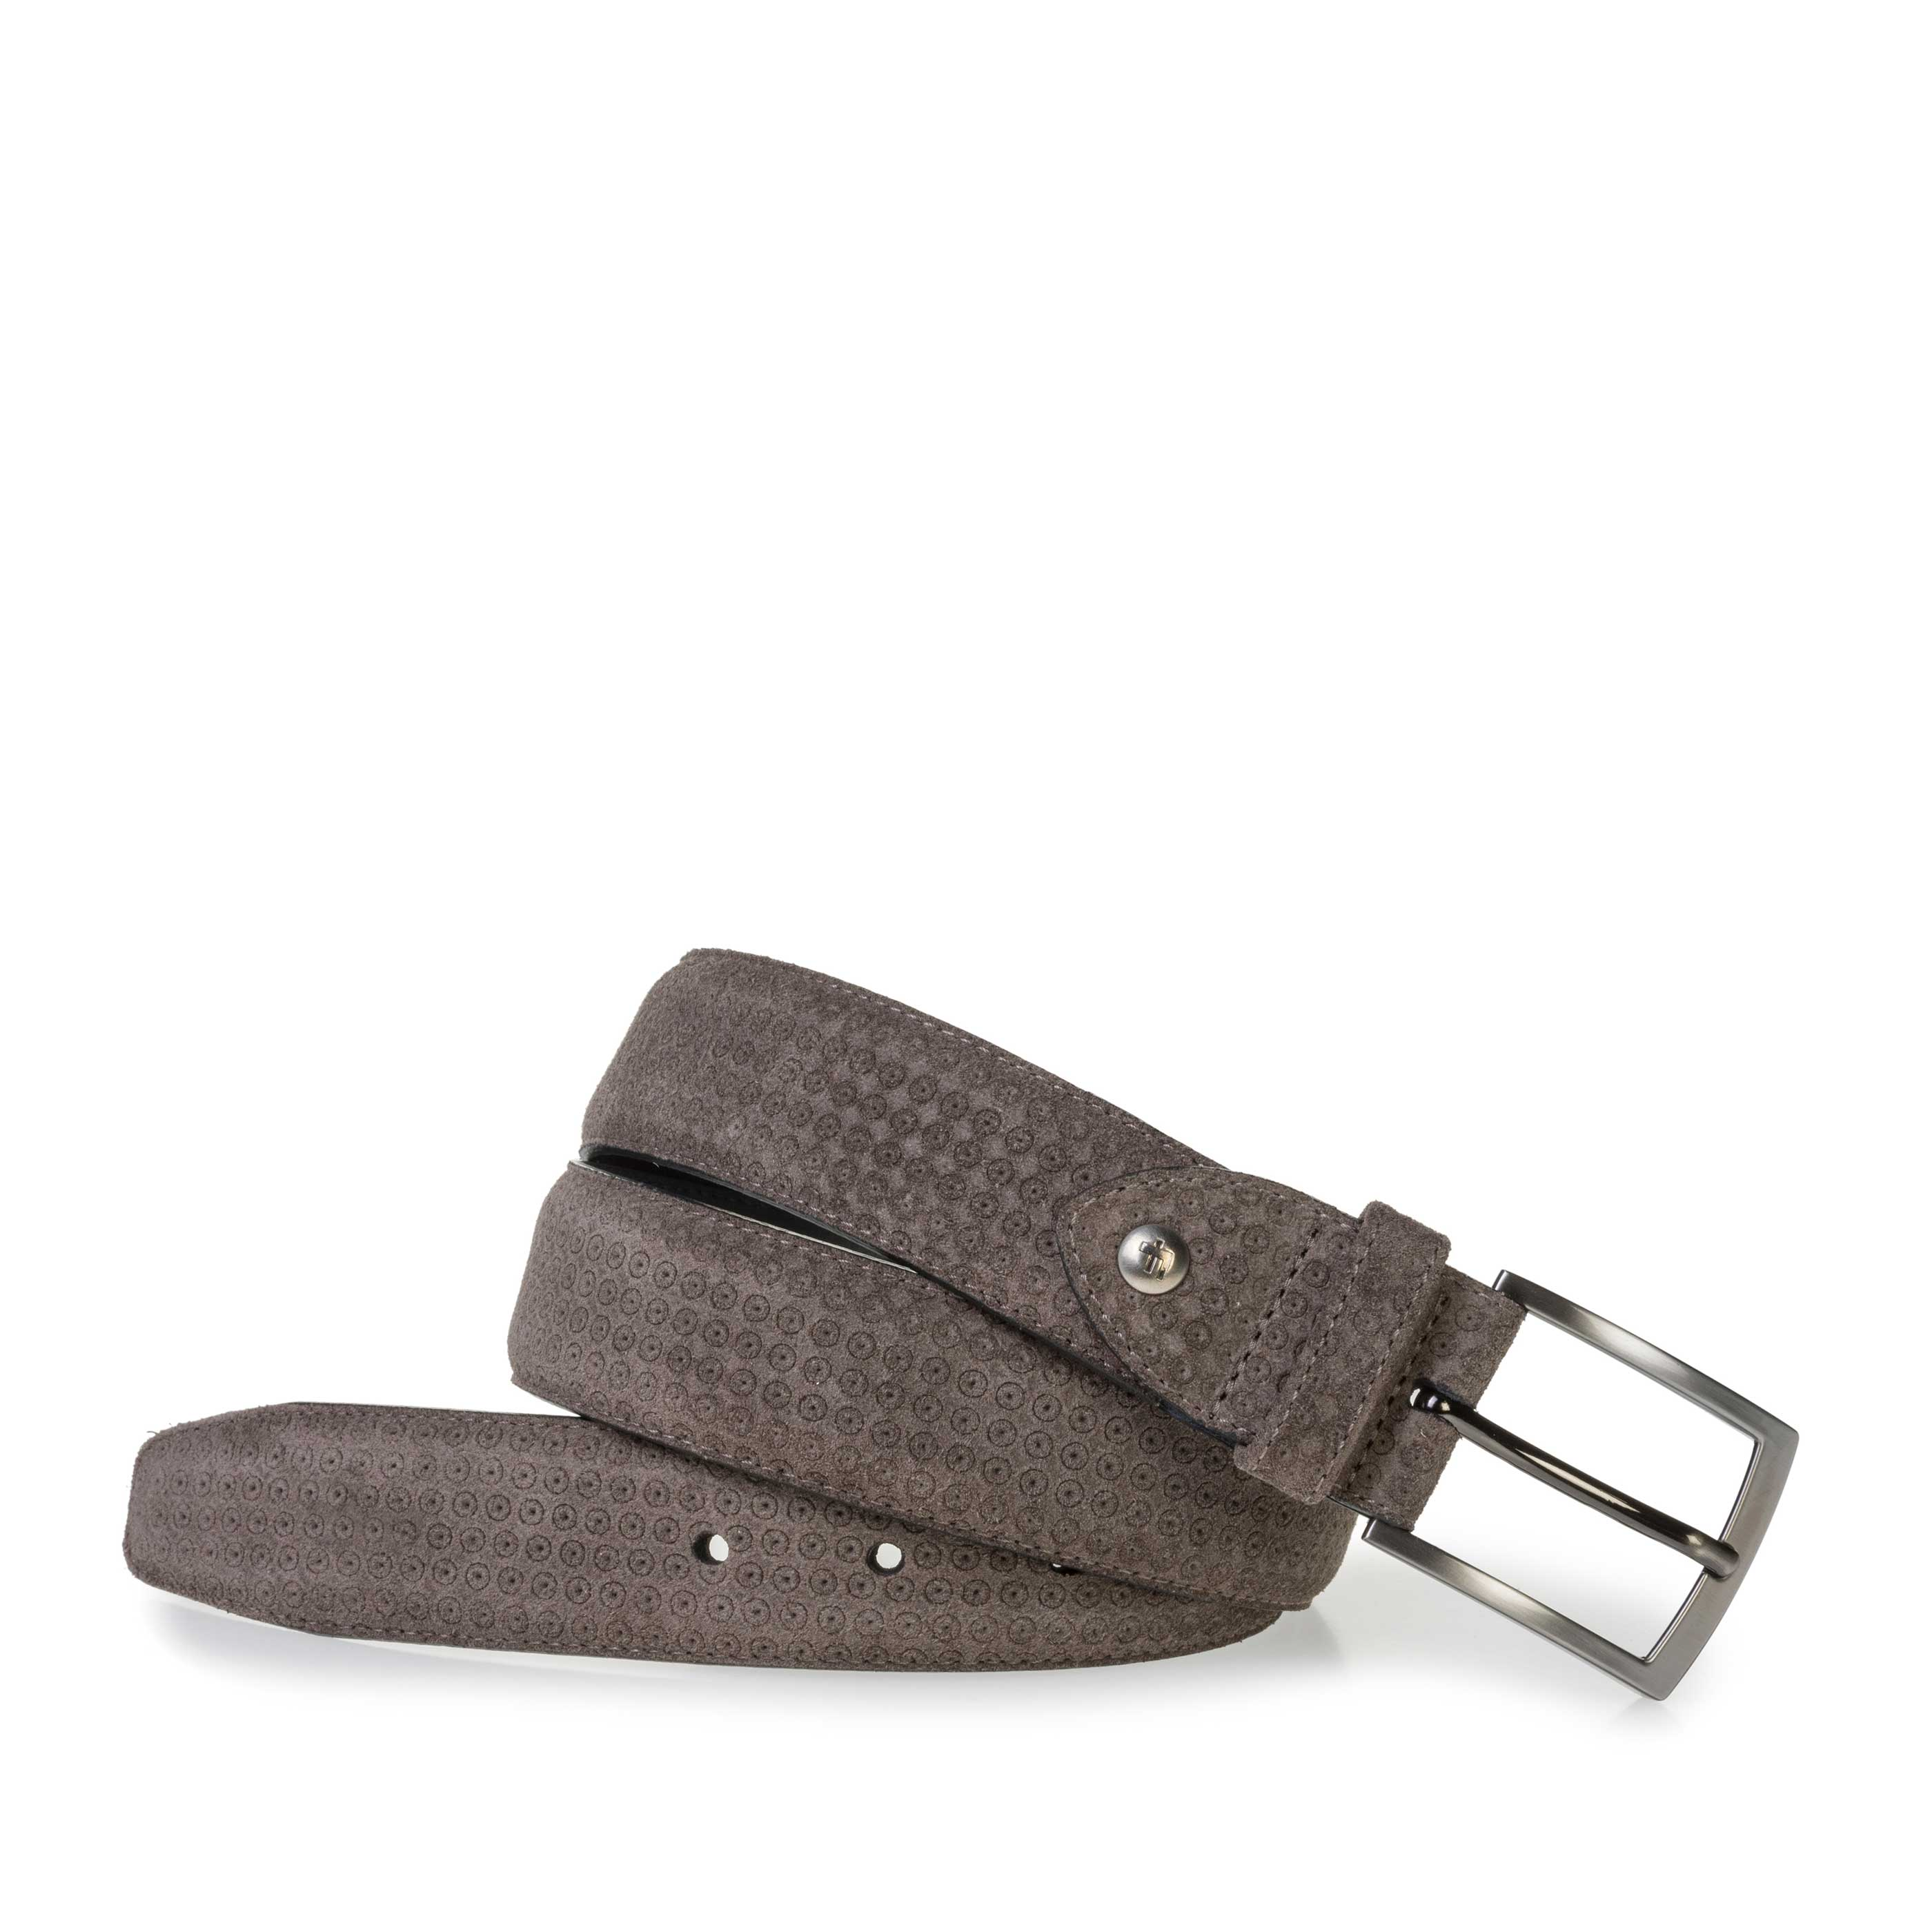 75200/78 - Taupe-coloured suede leather belt with print